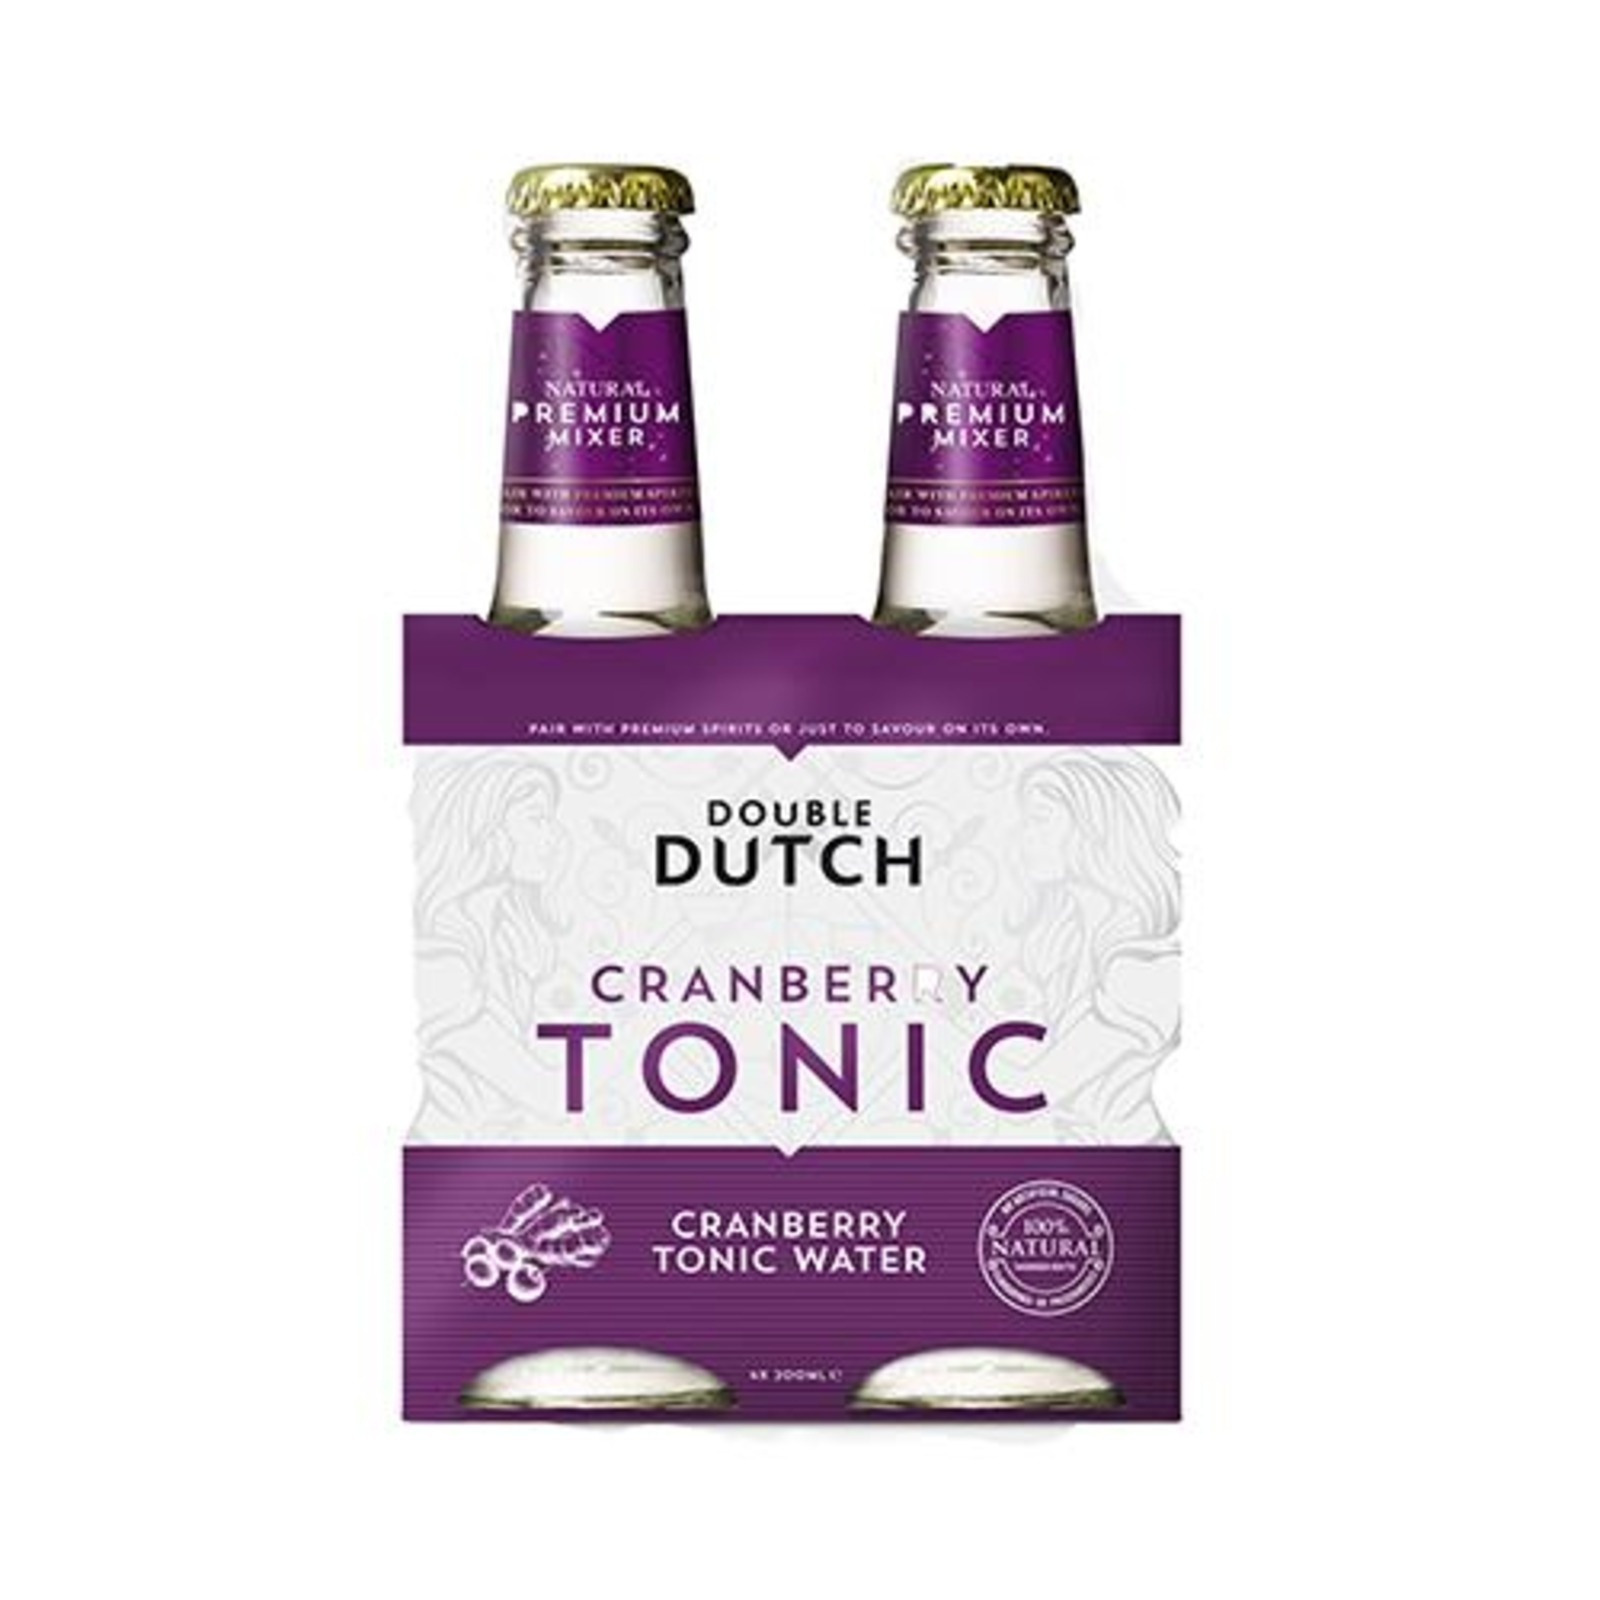 Double Dutch 4pack Cranberry - DD Tonic Water